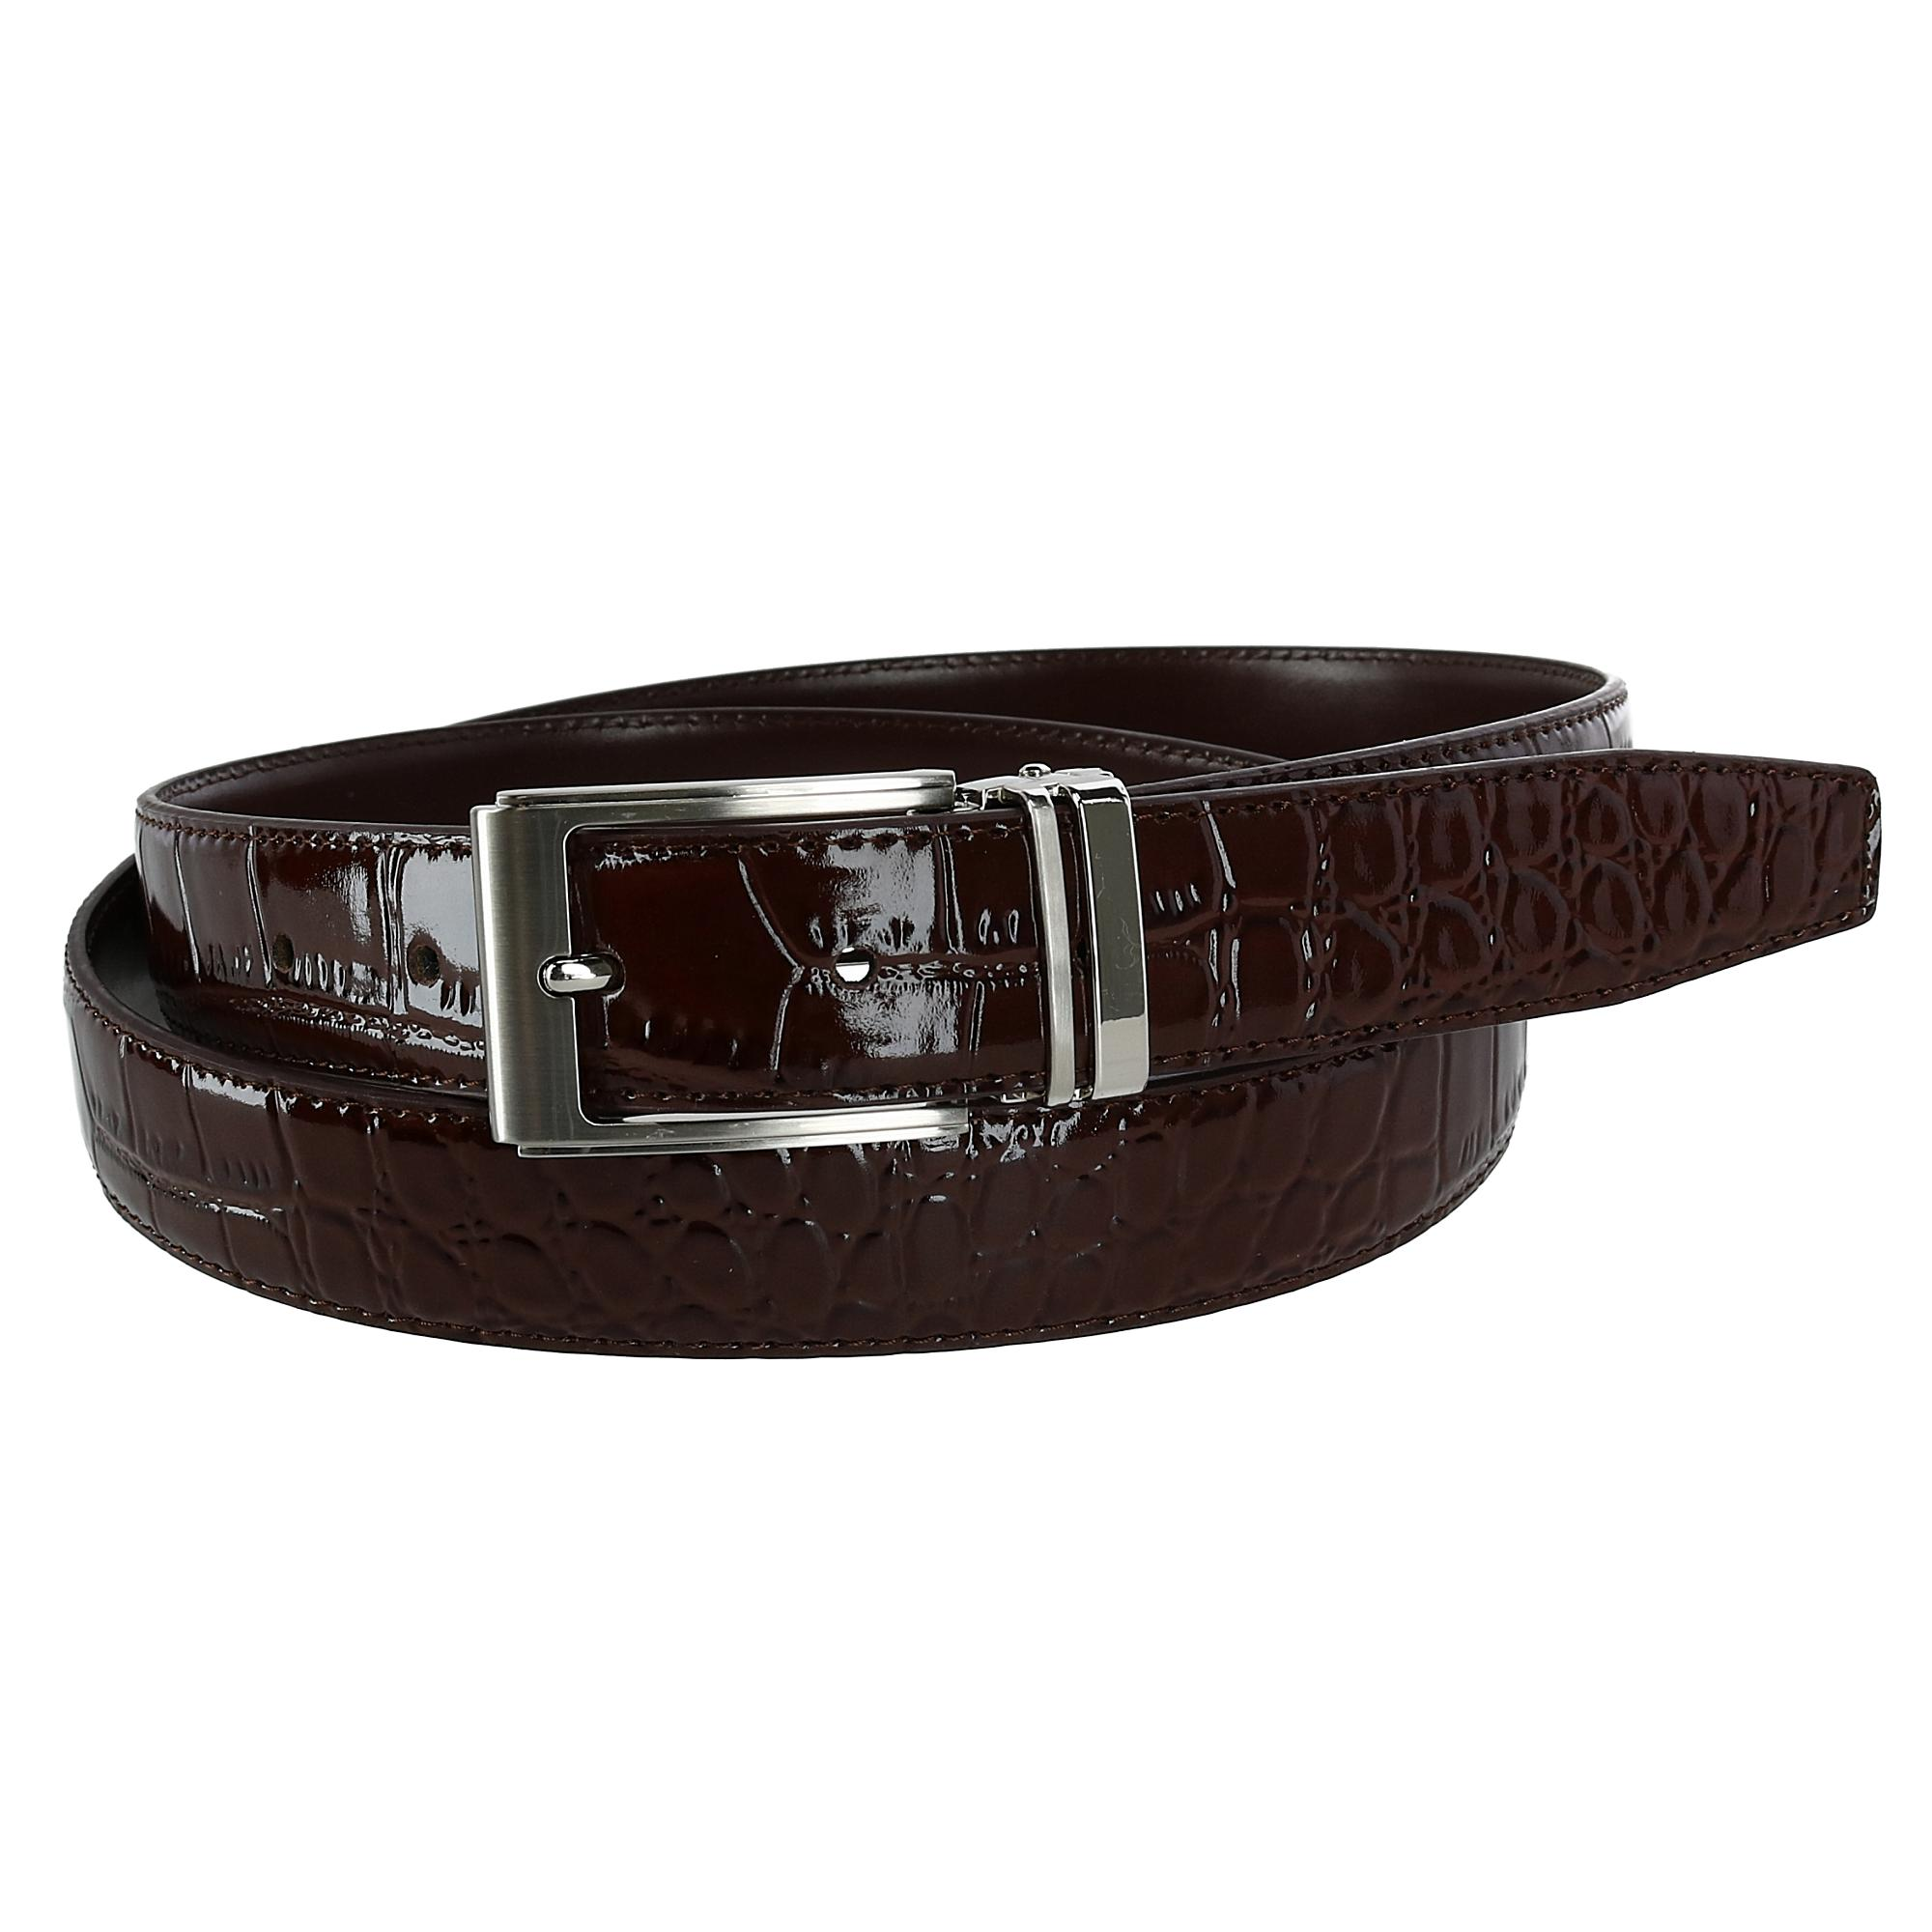 Ctm Mens Leather Croc Print Dress Belt With Clamp On Buckle